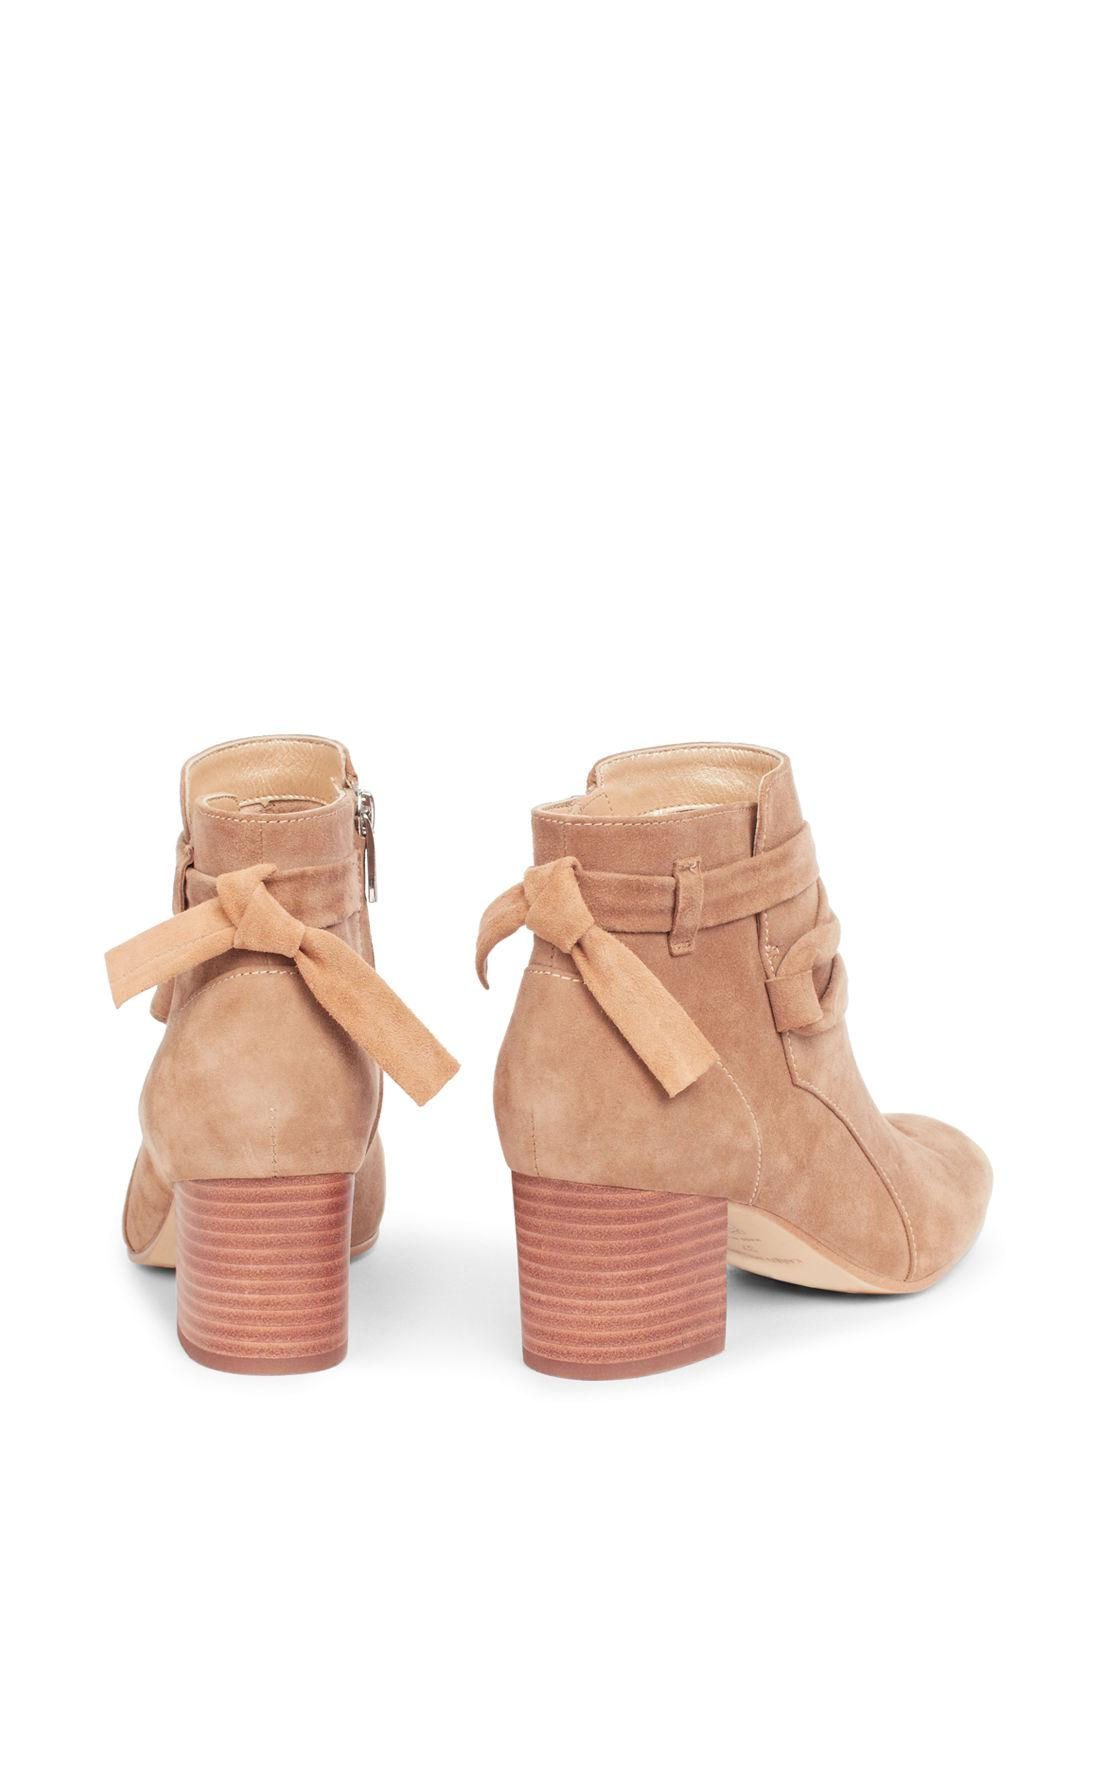 Karen Millen Suede Ankle Boots in Taupe (Natural)